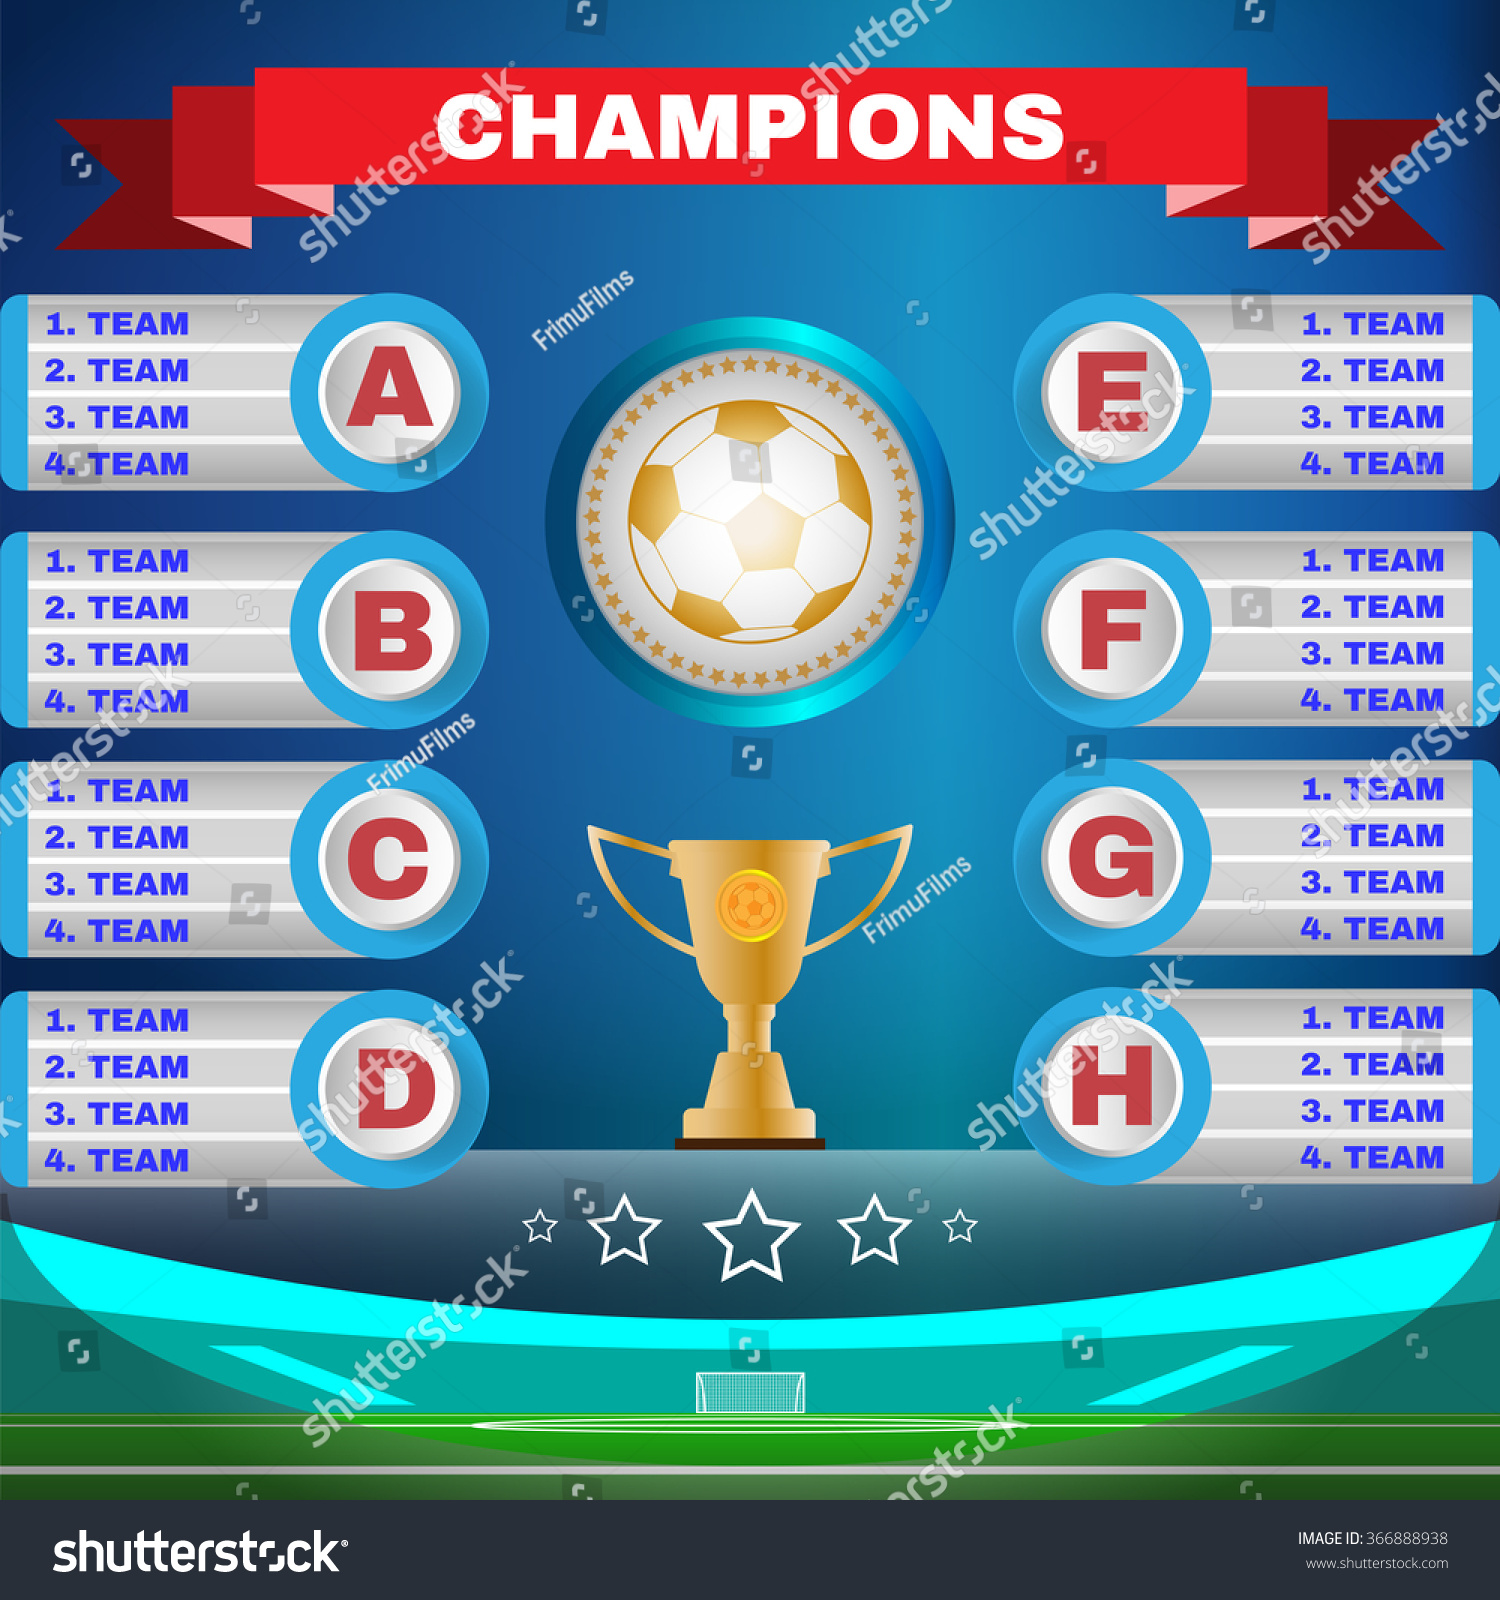 Soccer Champions Scoreboard Template On Blue Illustration – Scoreboard Template